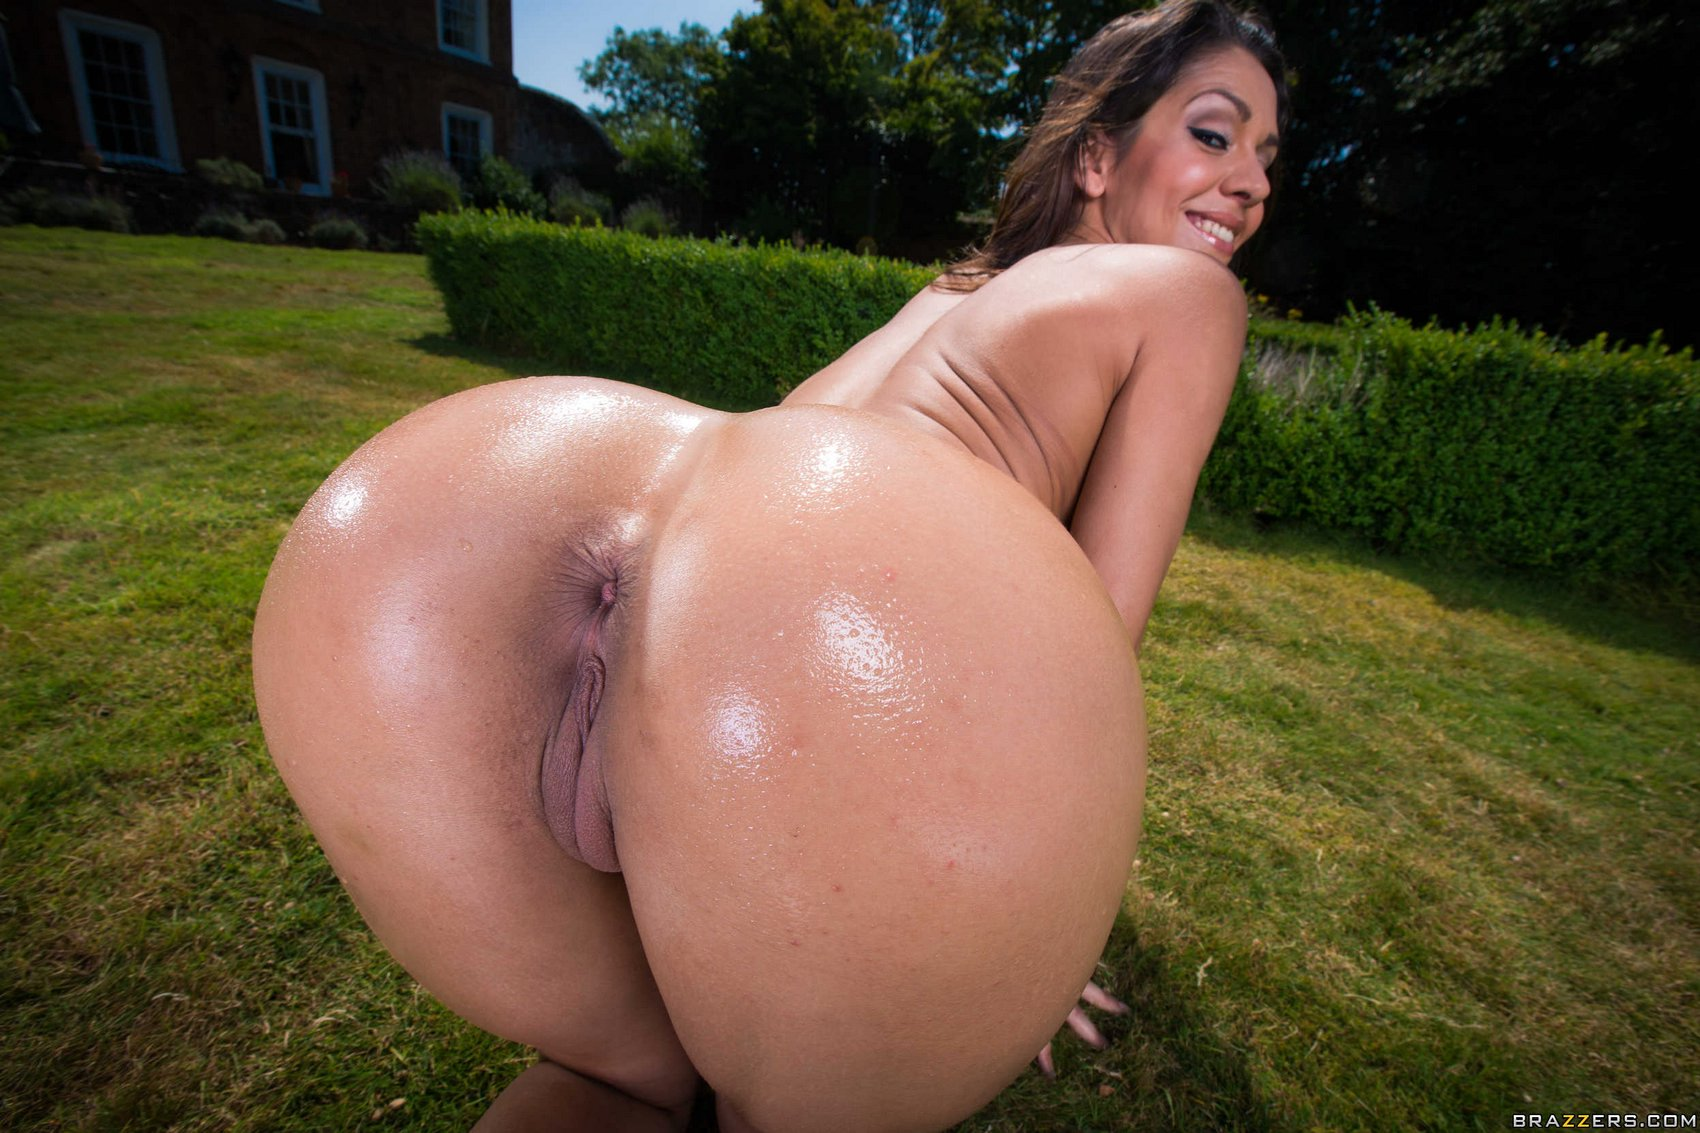 Big ass pornstar hd